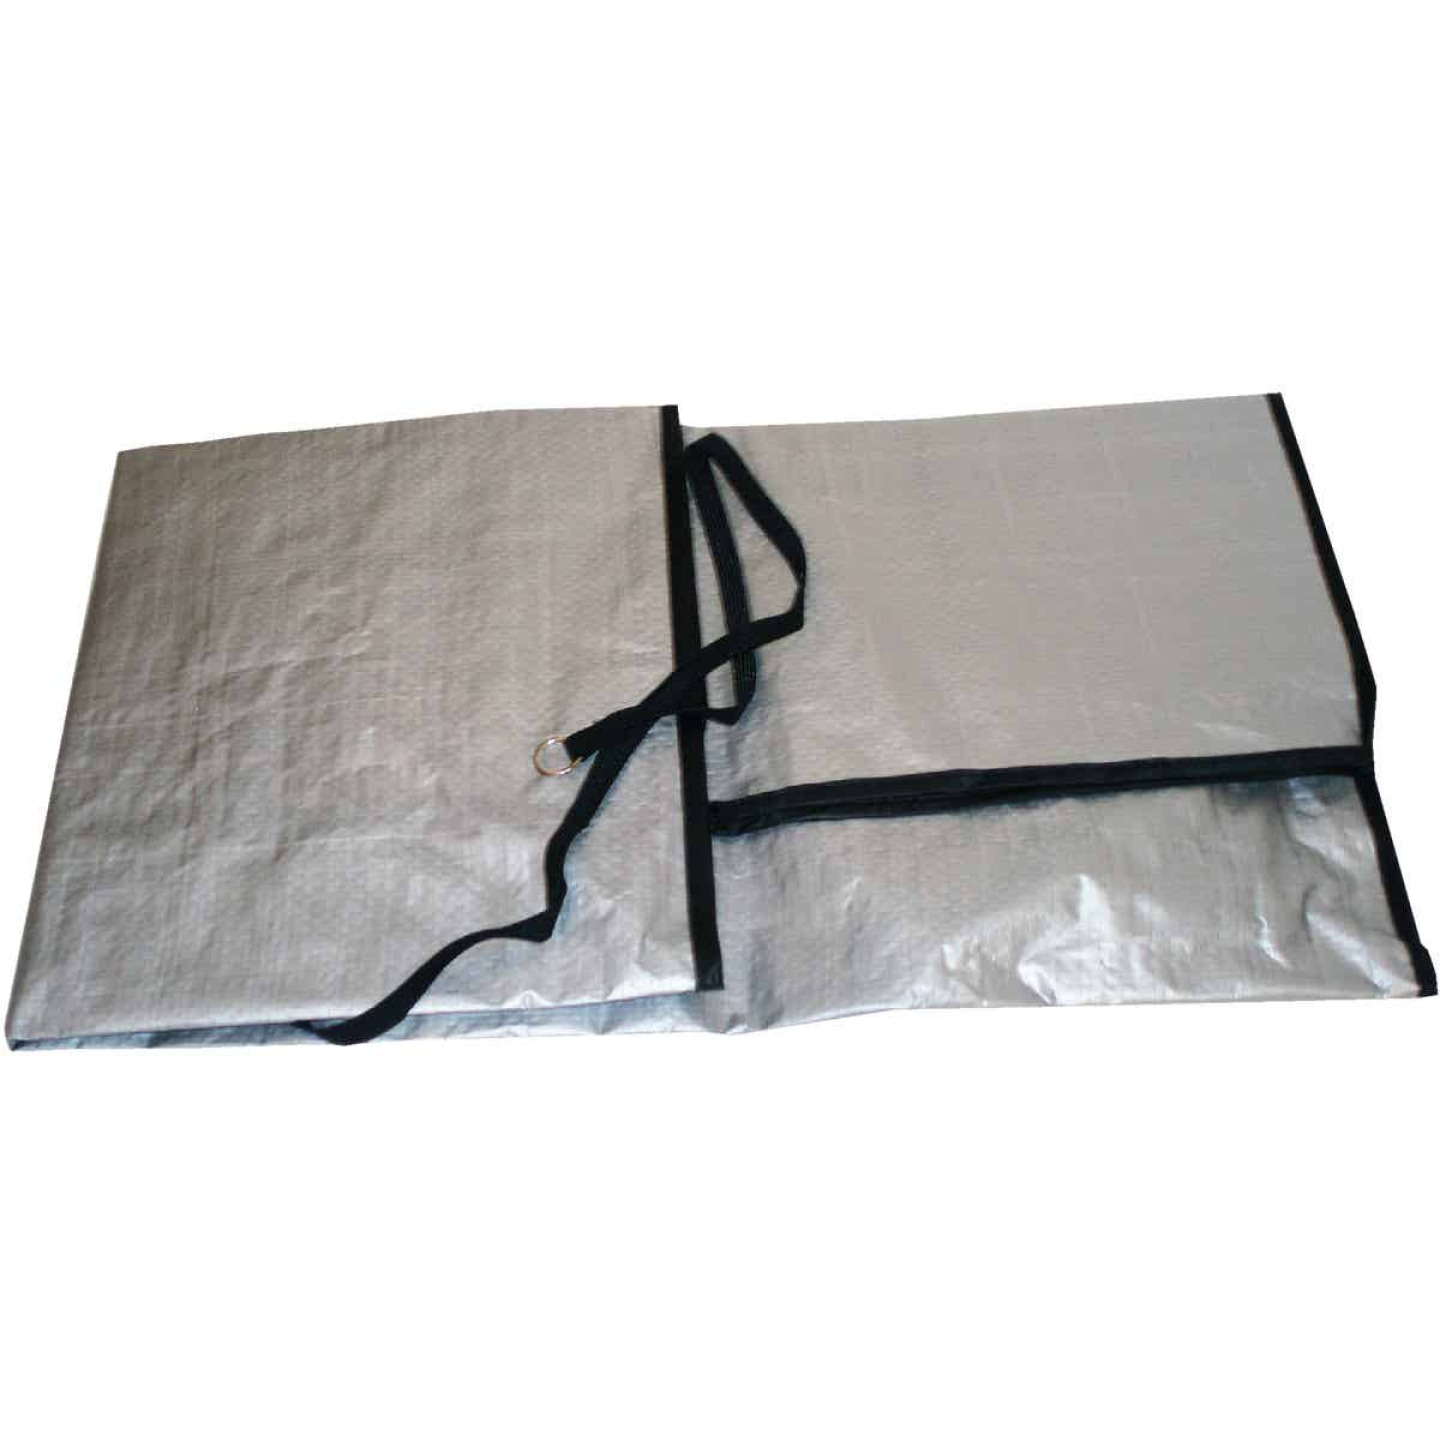 """Do it 34""""x 34""""x 30"""" 9 mil Square Air Conditioner Cover Image 1"""